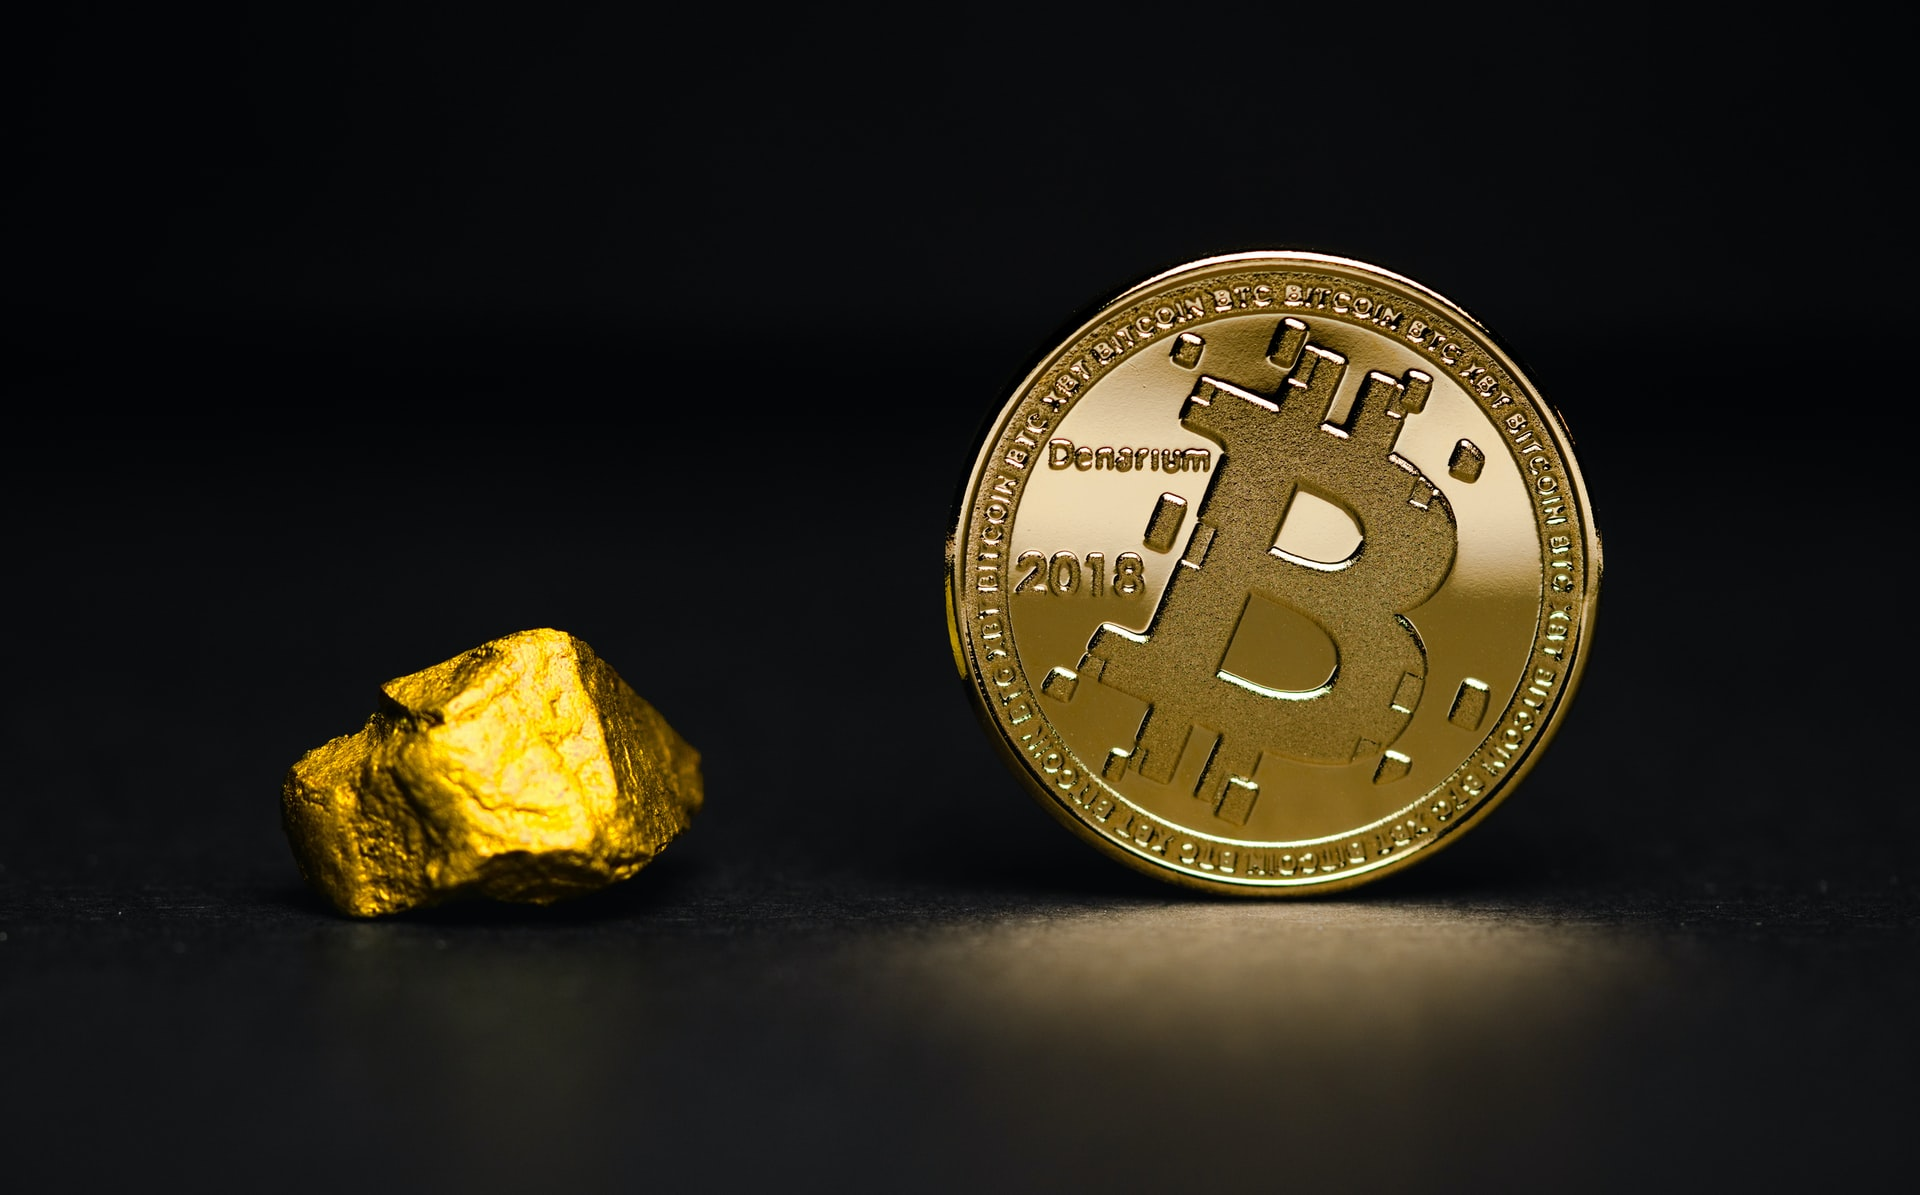 JPMorgan: Gold will suffer due to rise of Bitcoin